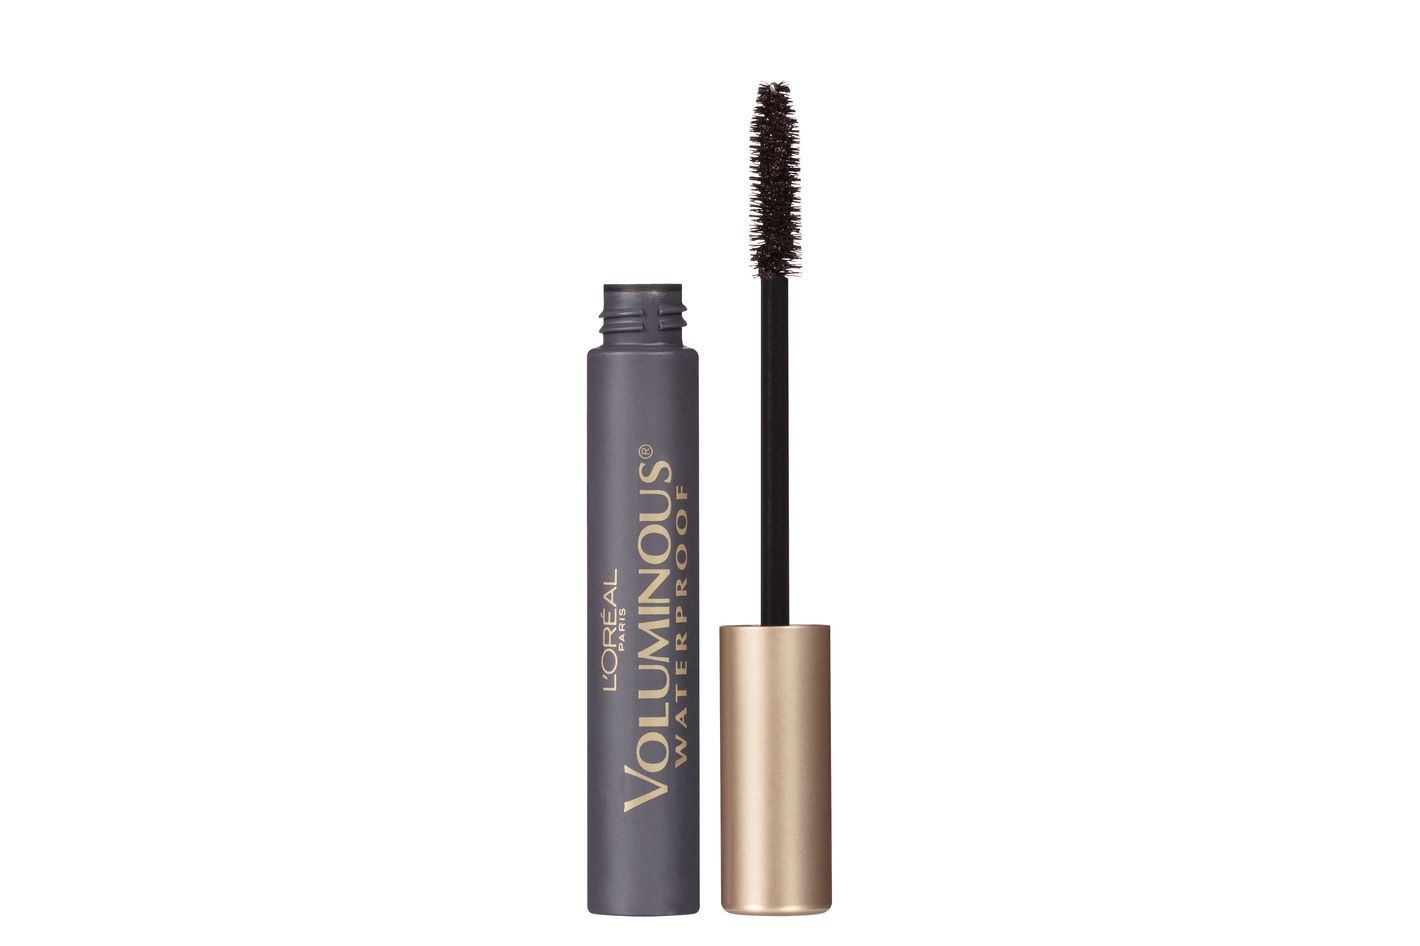 L'ORÉAL Paris Voluminous Original Mascara